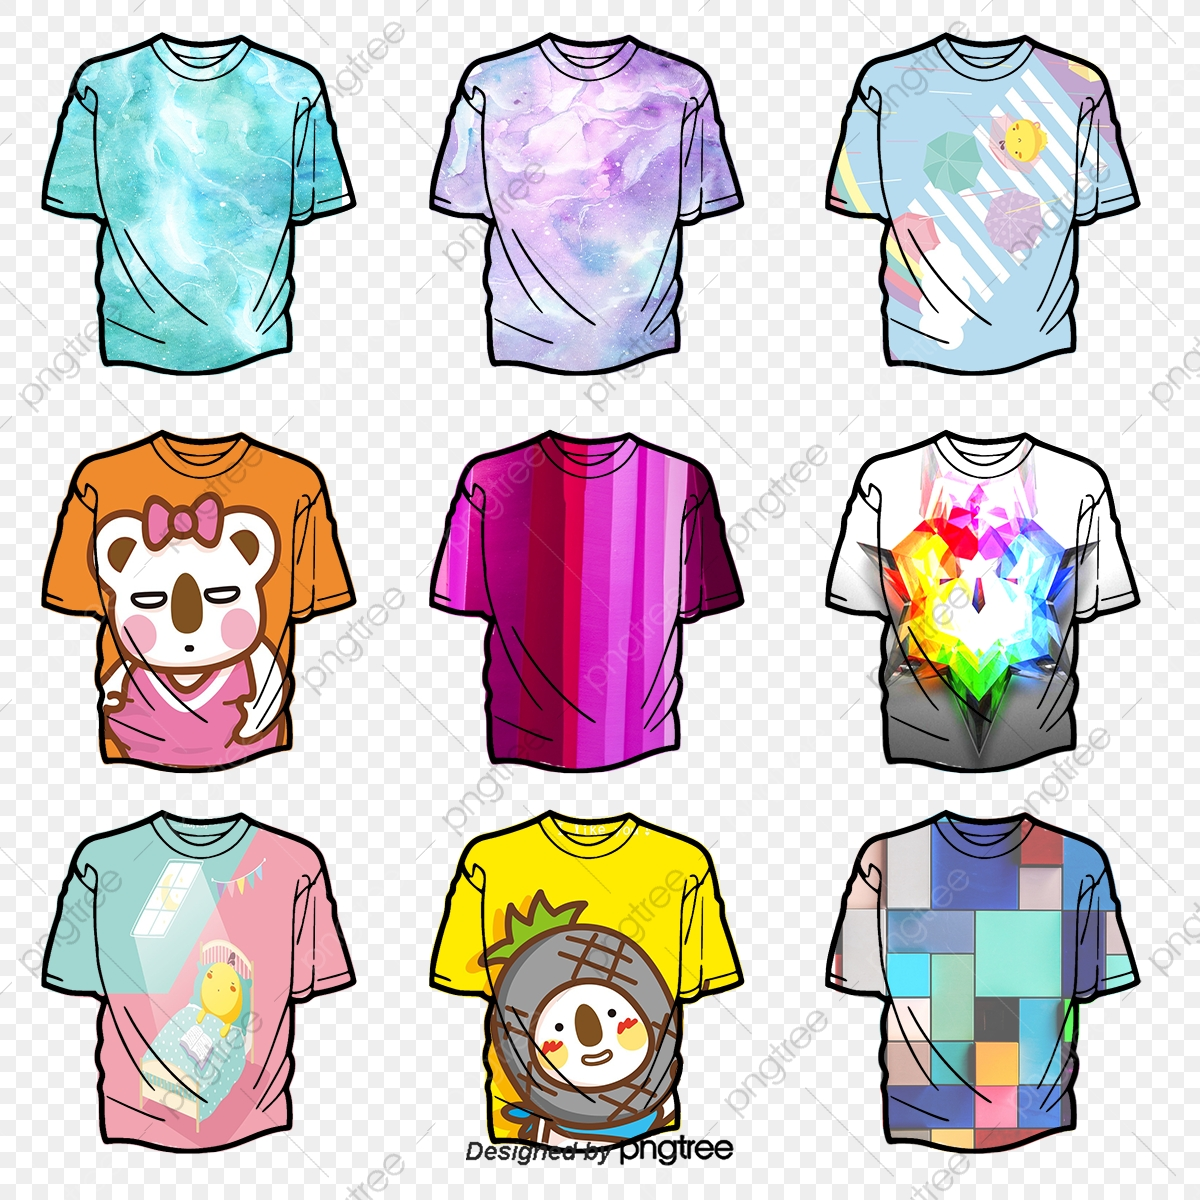 T Shirt Design Png Vector Psd And Clipart With Transparent Background For Free Download Pngtree